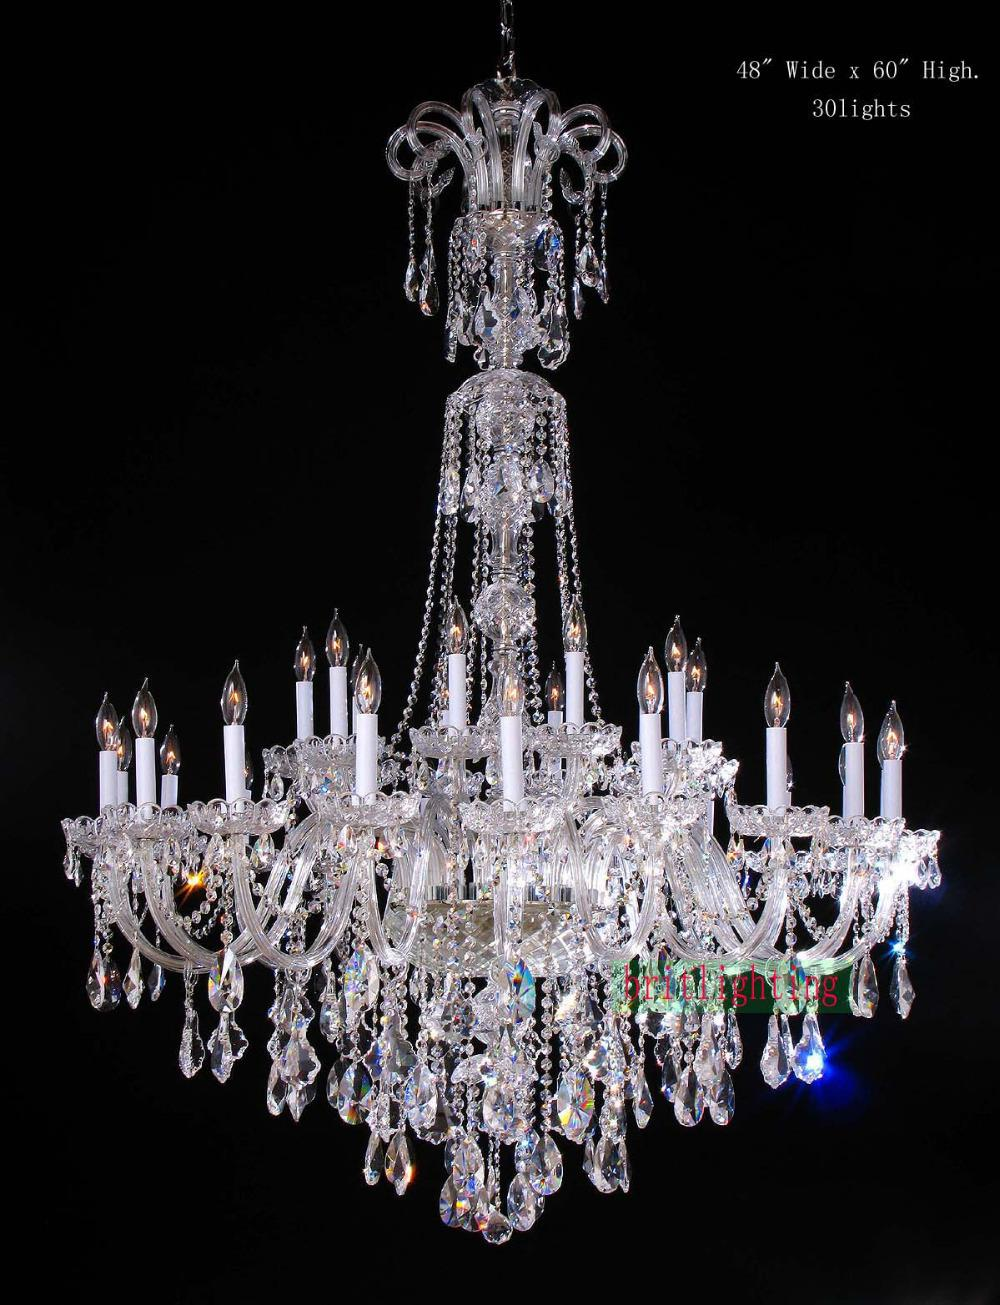 Chandelier Crystals | Lowes Crystal Chandeliers | Crystal Flush Mount Chandelier